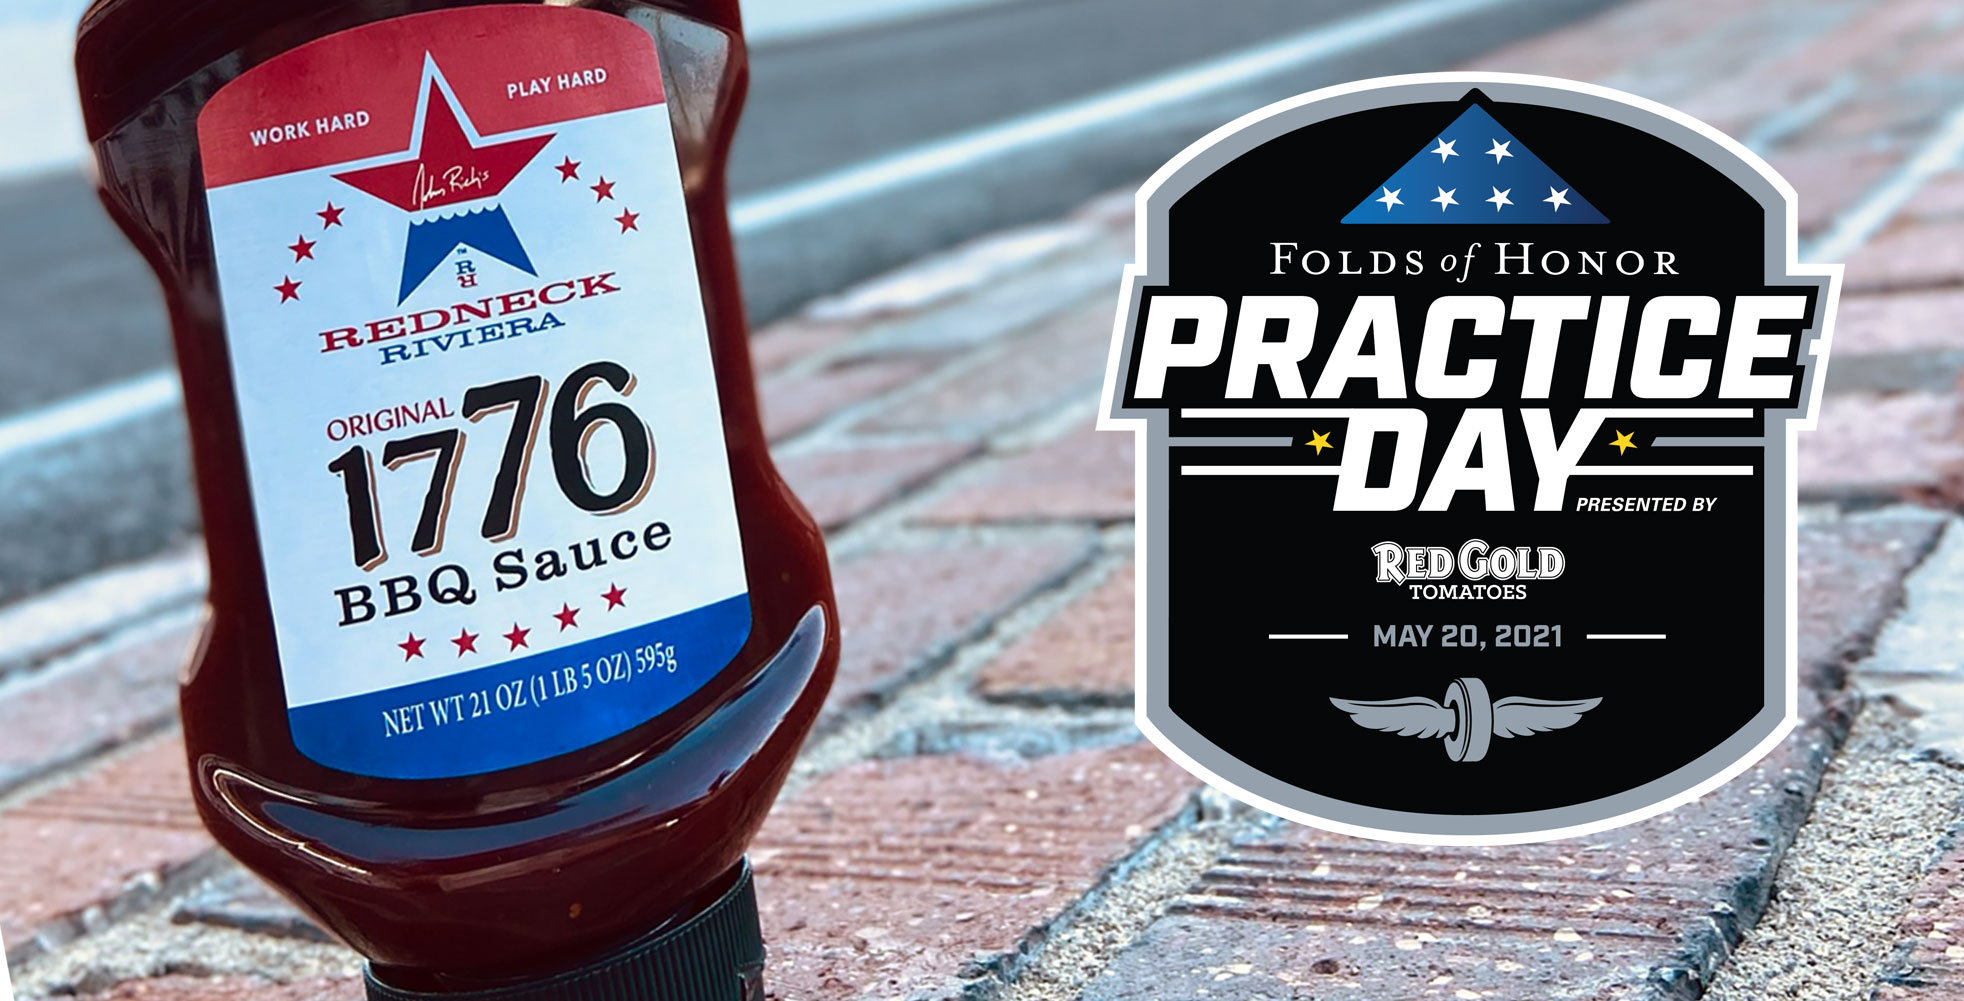 Image of 1776 BBQ Sauce on Indianapolis Motor Speedway yard of bricks